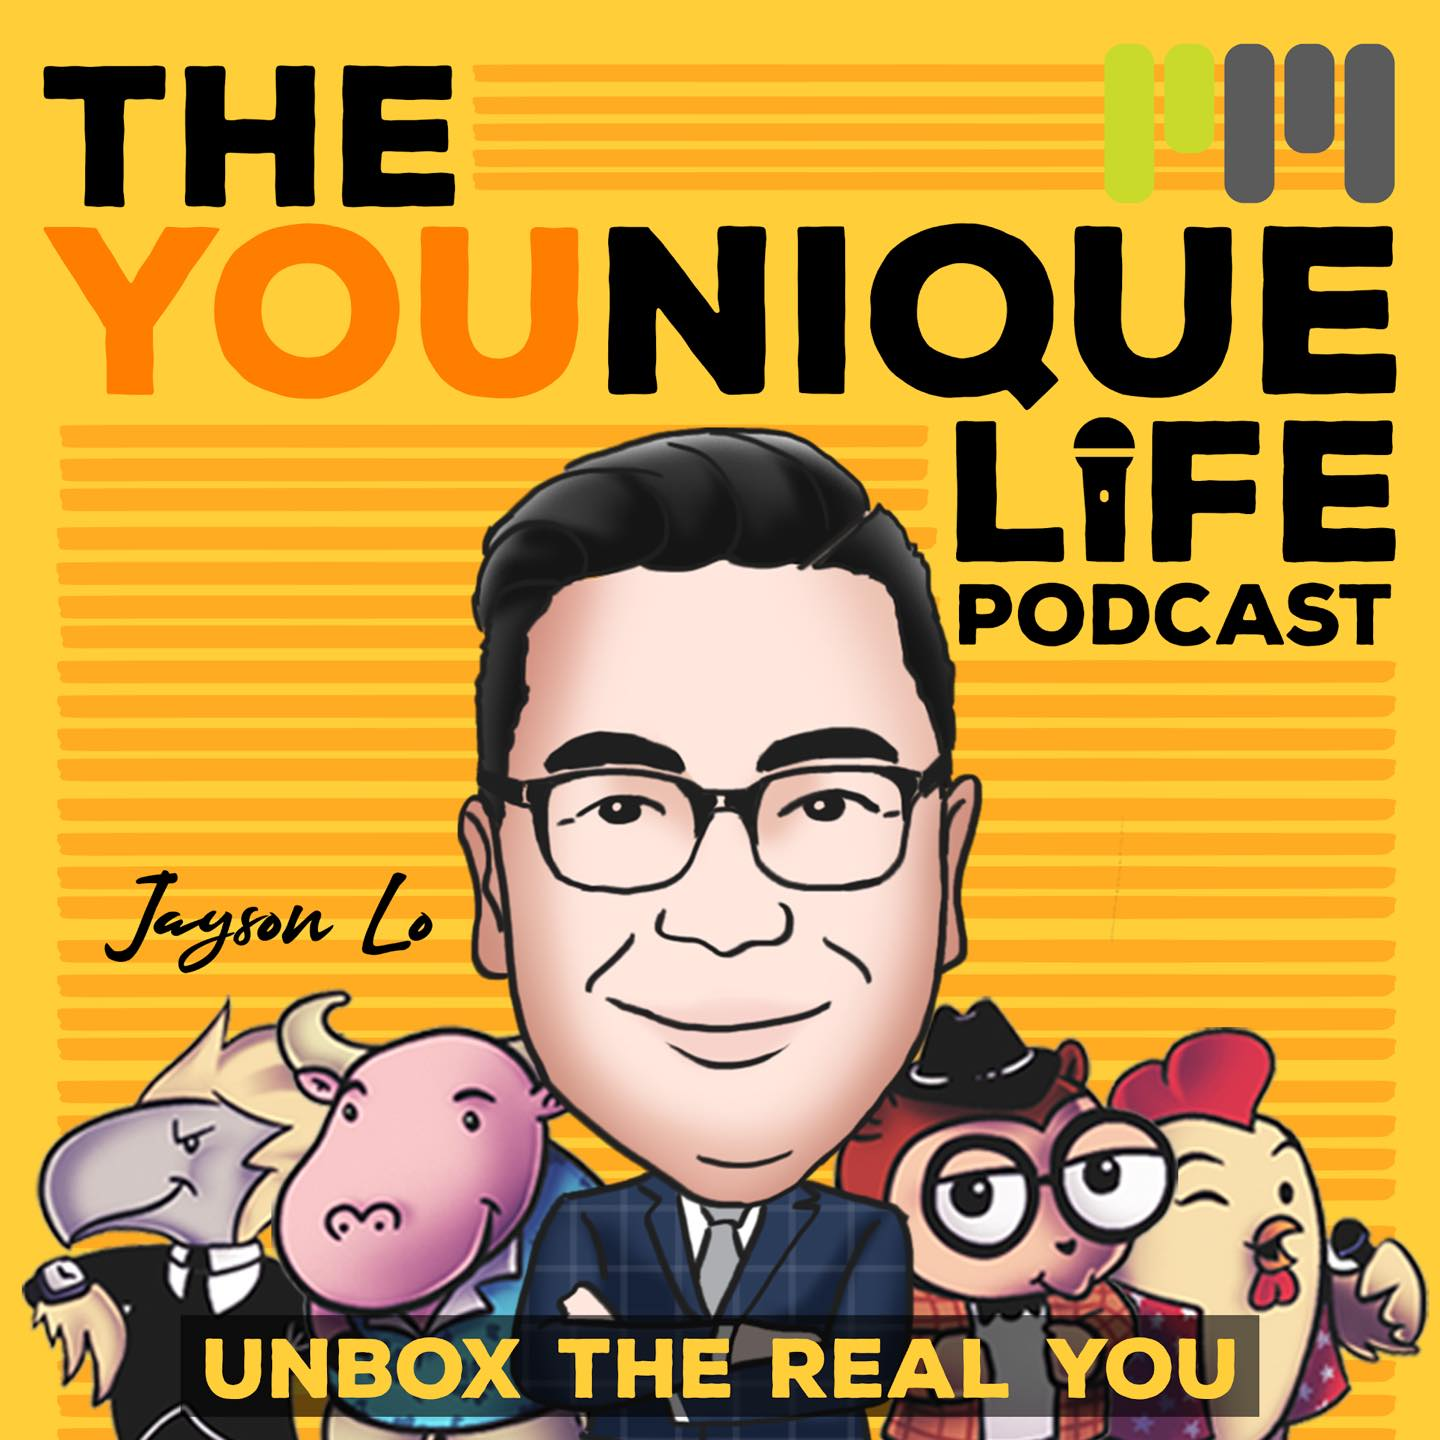 The YOUnique Life Podcast Trailer